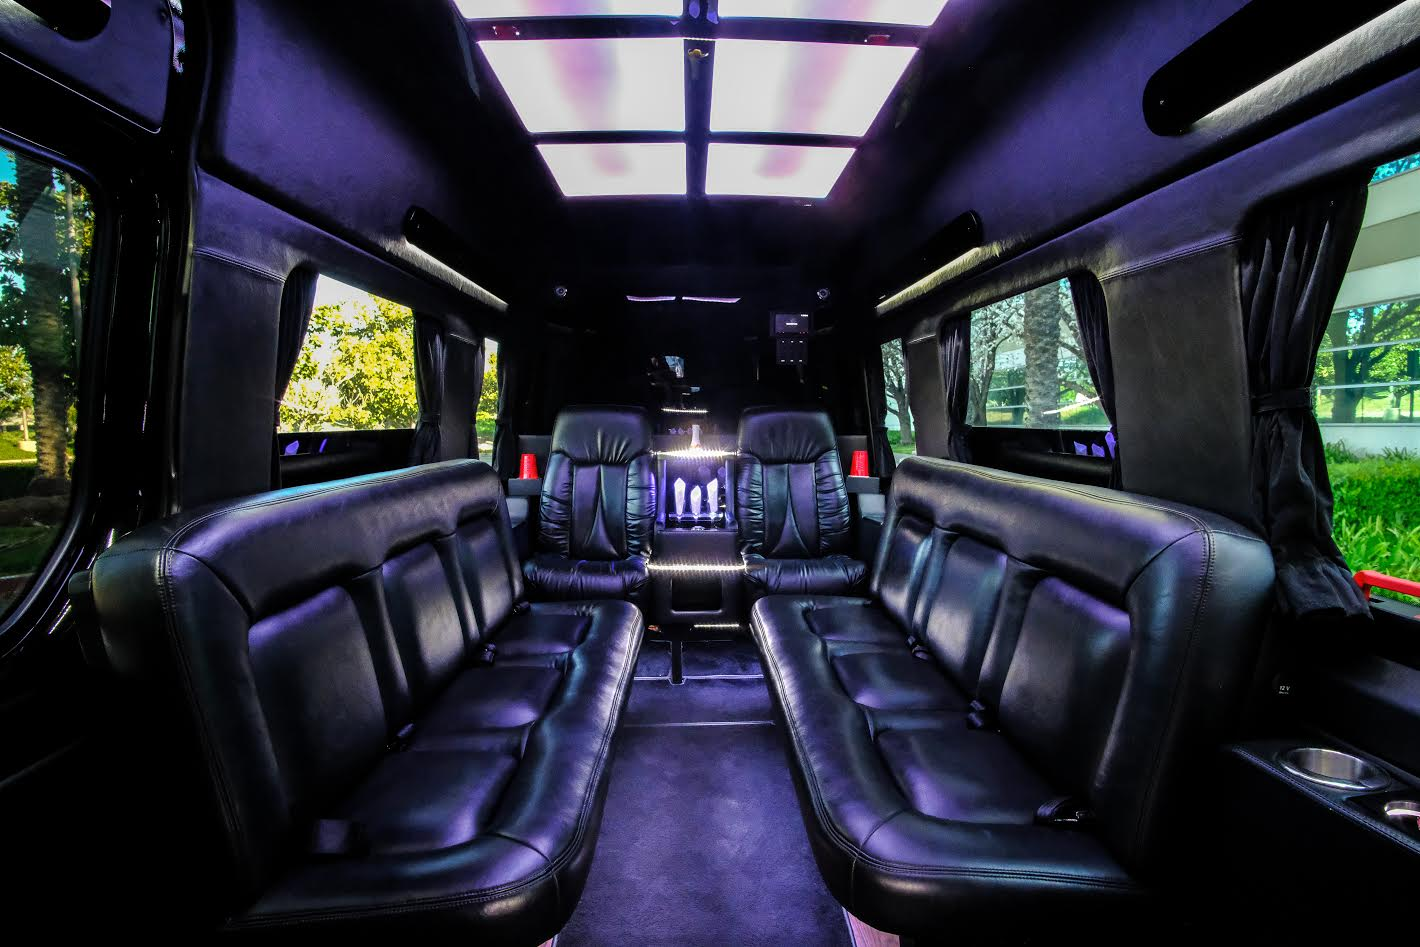 10 passenger black Executive Mercedes Benz sprinter limousine Interior 2